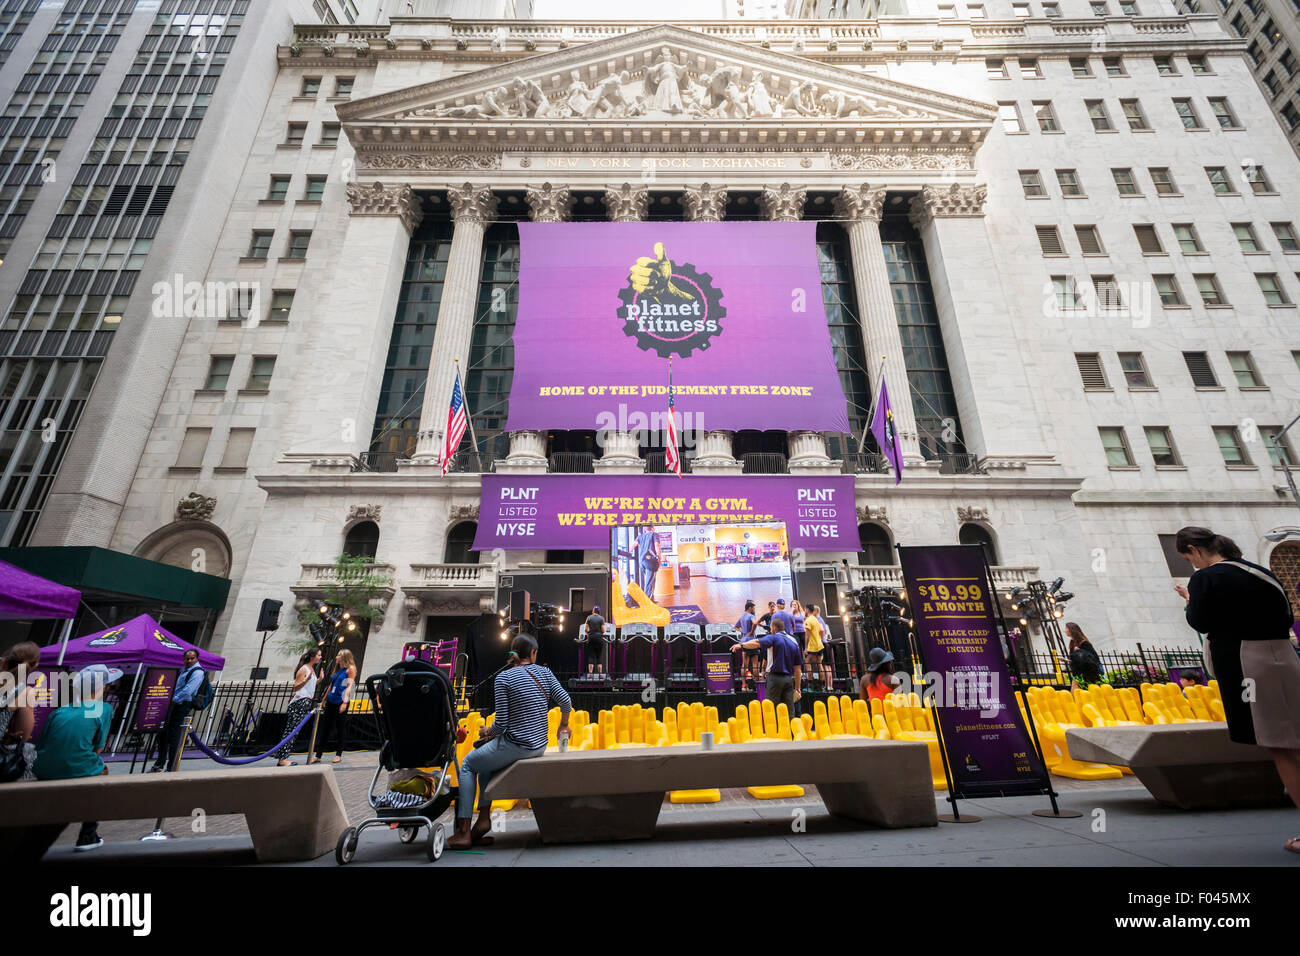 Planet Fitness Membership High Resolution Stock Photography And Images Alamy